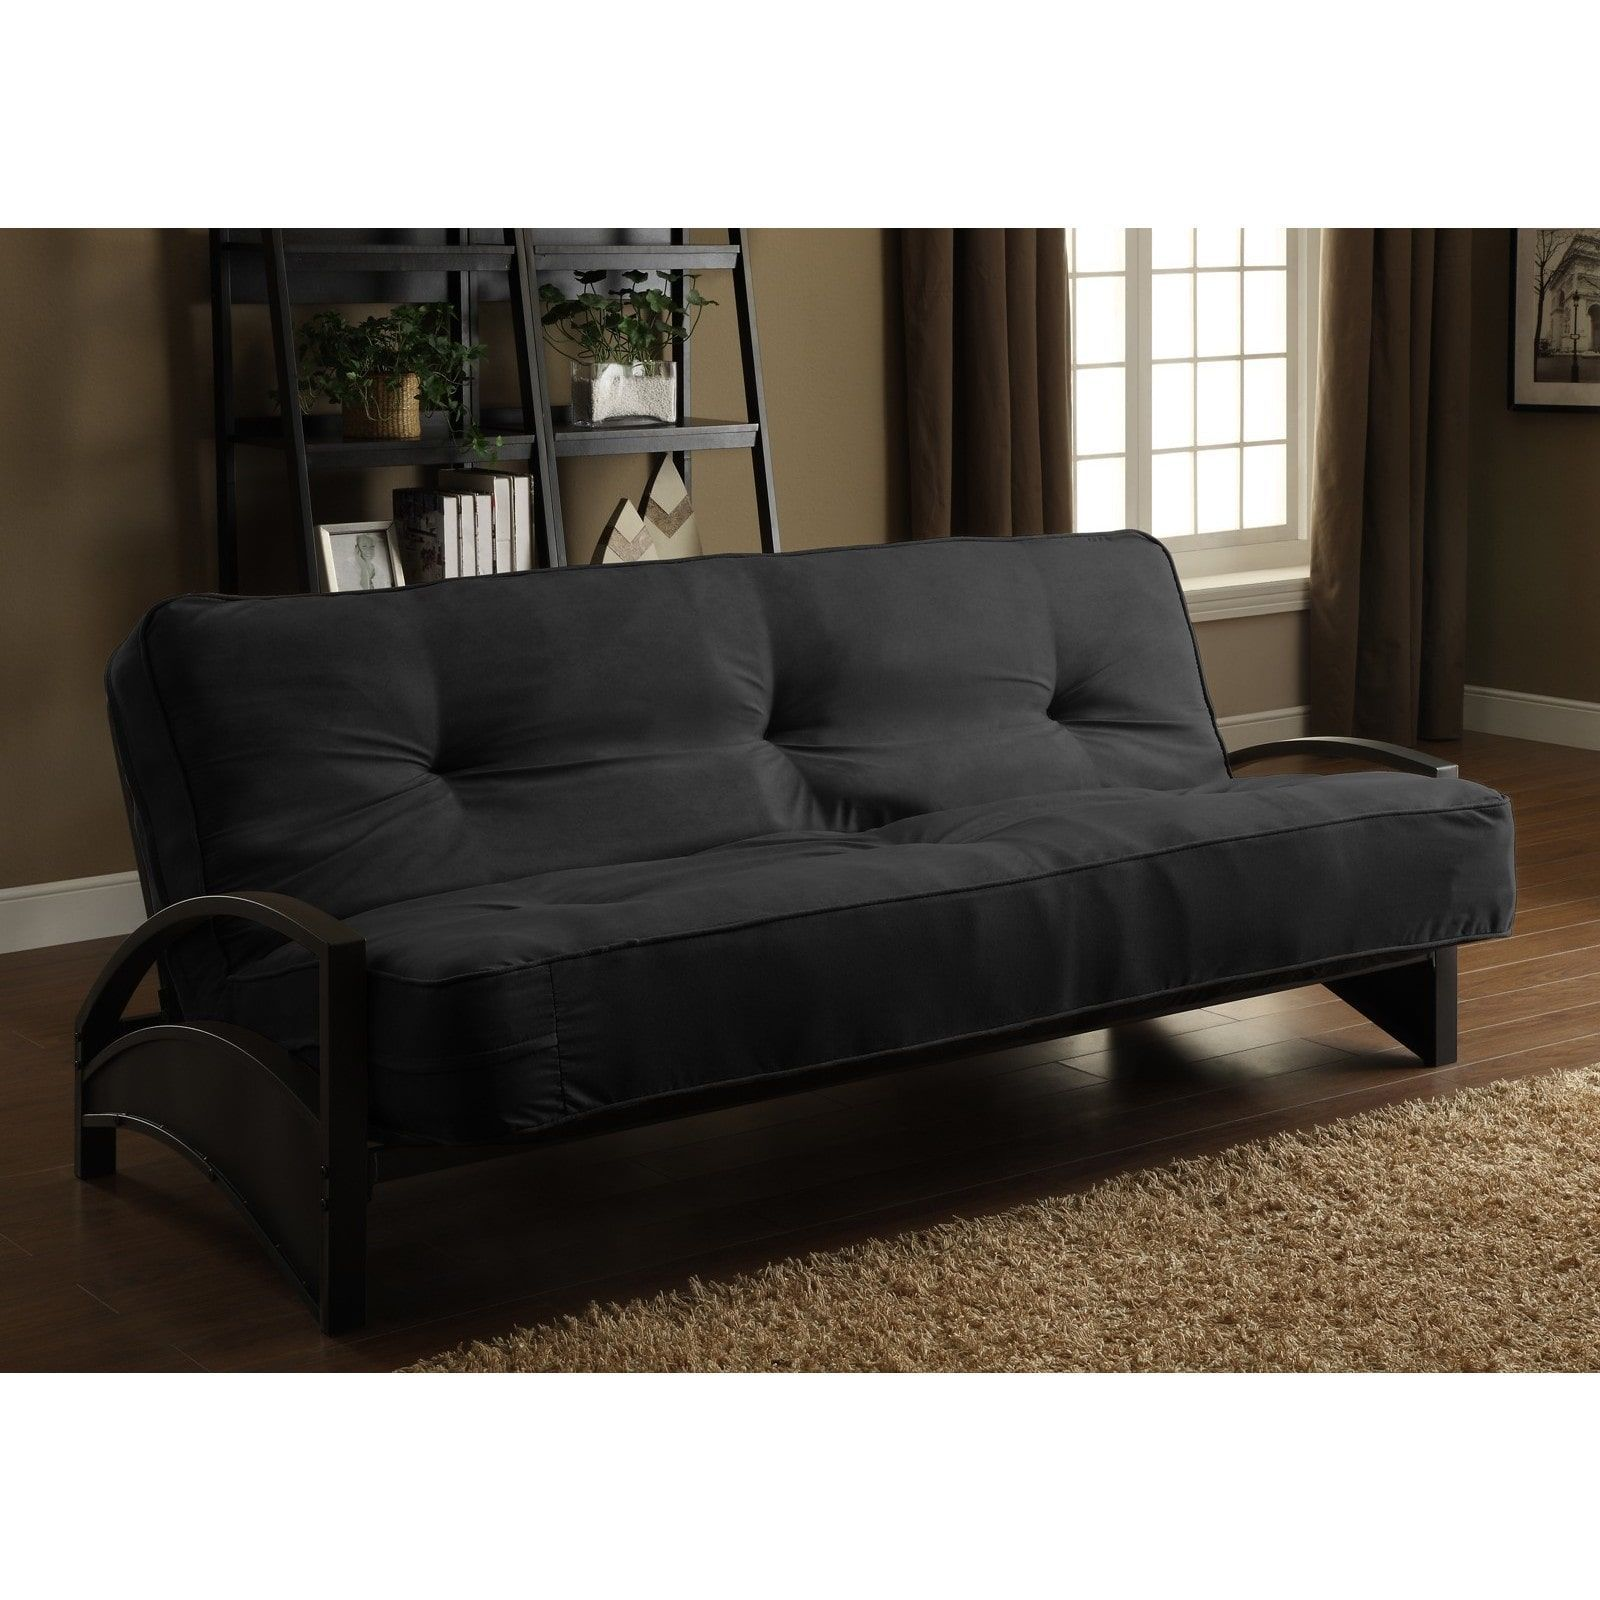 pdx zipcode futons metal futon contemporary black wayfair furniture reviews design frame